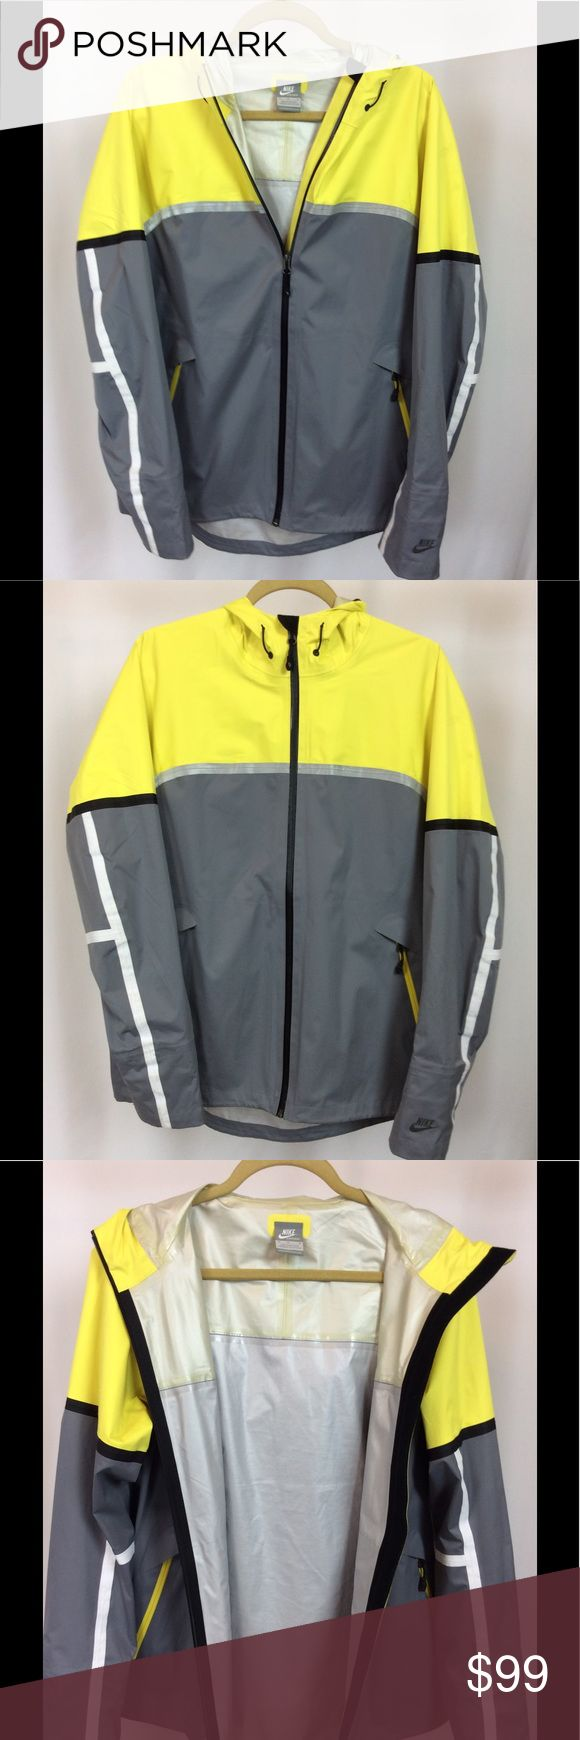 "Nike Sportswear Libero Storm Fit Jacket Men's Nike Sportswear Libero Storm Fit Jacket in Grey and Volt. Size medium; 21"" width, 27.5"" length (longer in back). 100% polyester. Storm-fit 10 seamsealed fabric completely blocks wind and rain penetration at up to 10,000mm of water pressure. Hooded with waist adjusters. Zip through, two side pockets with zip. 3M reflective stripe across chest and back. Slim fit, lightweight and durable. In excellent condition! Nike Jackets & Coats Performance…"